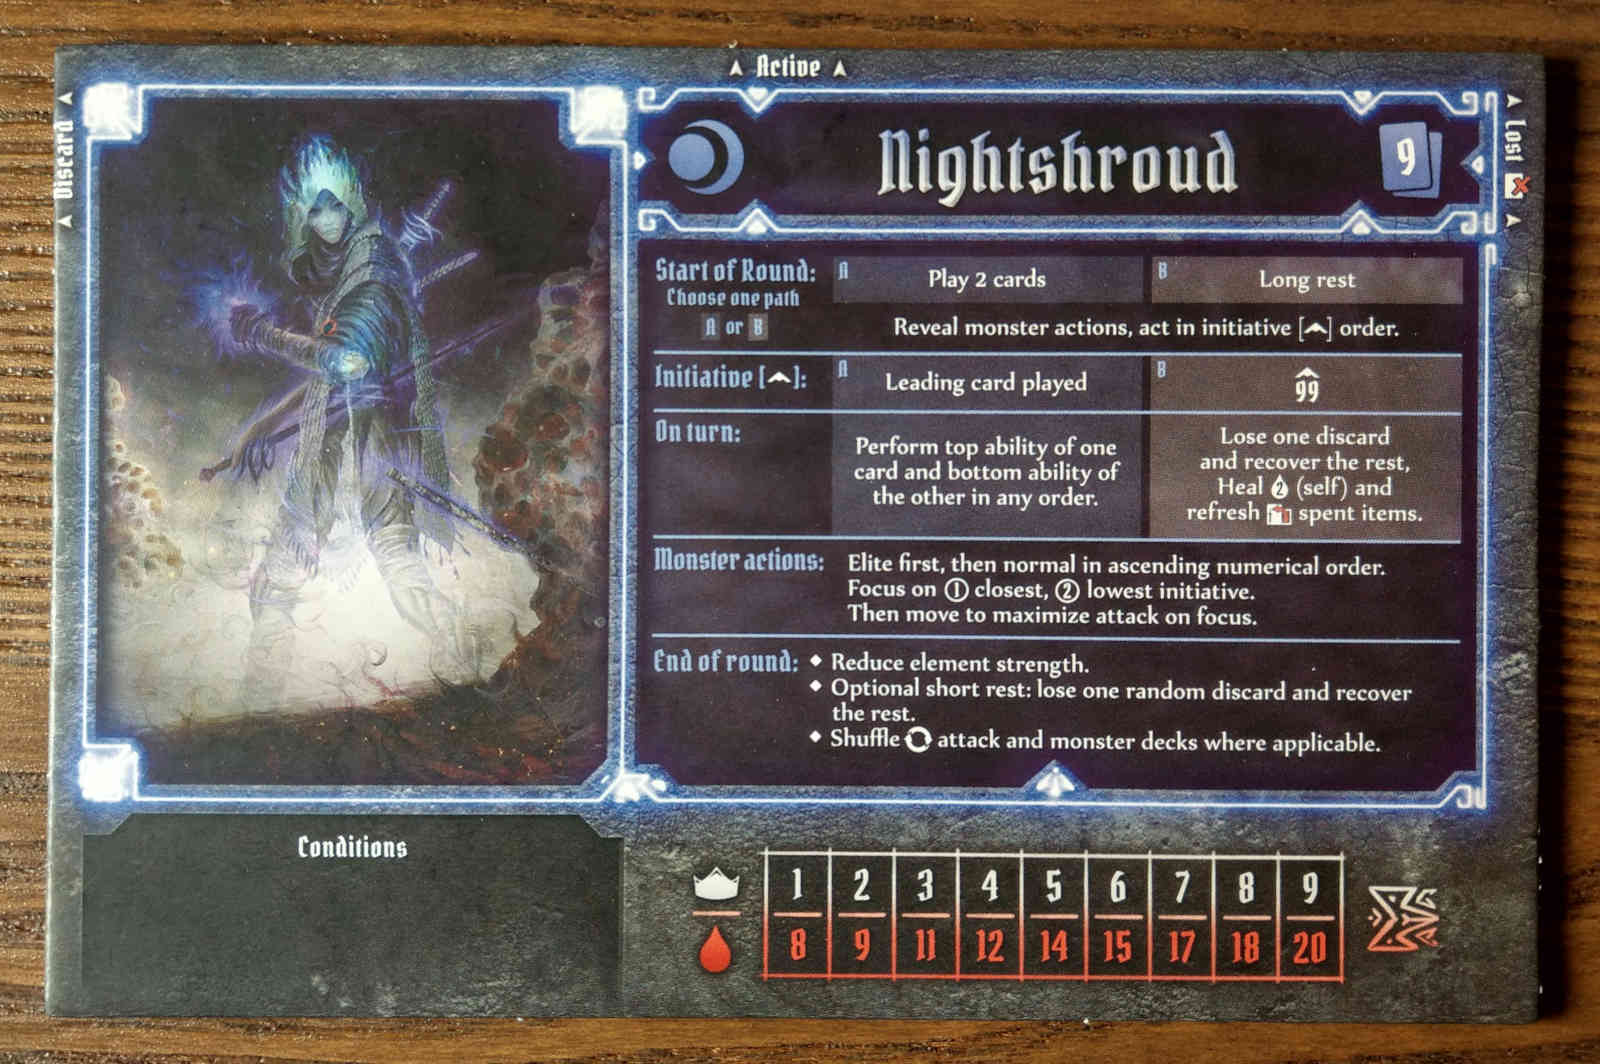 Nightshroud class board showing levels and health